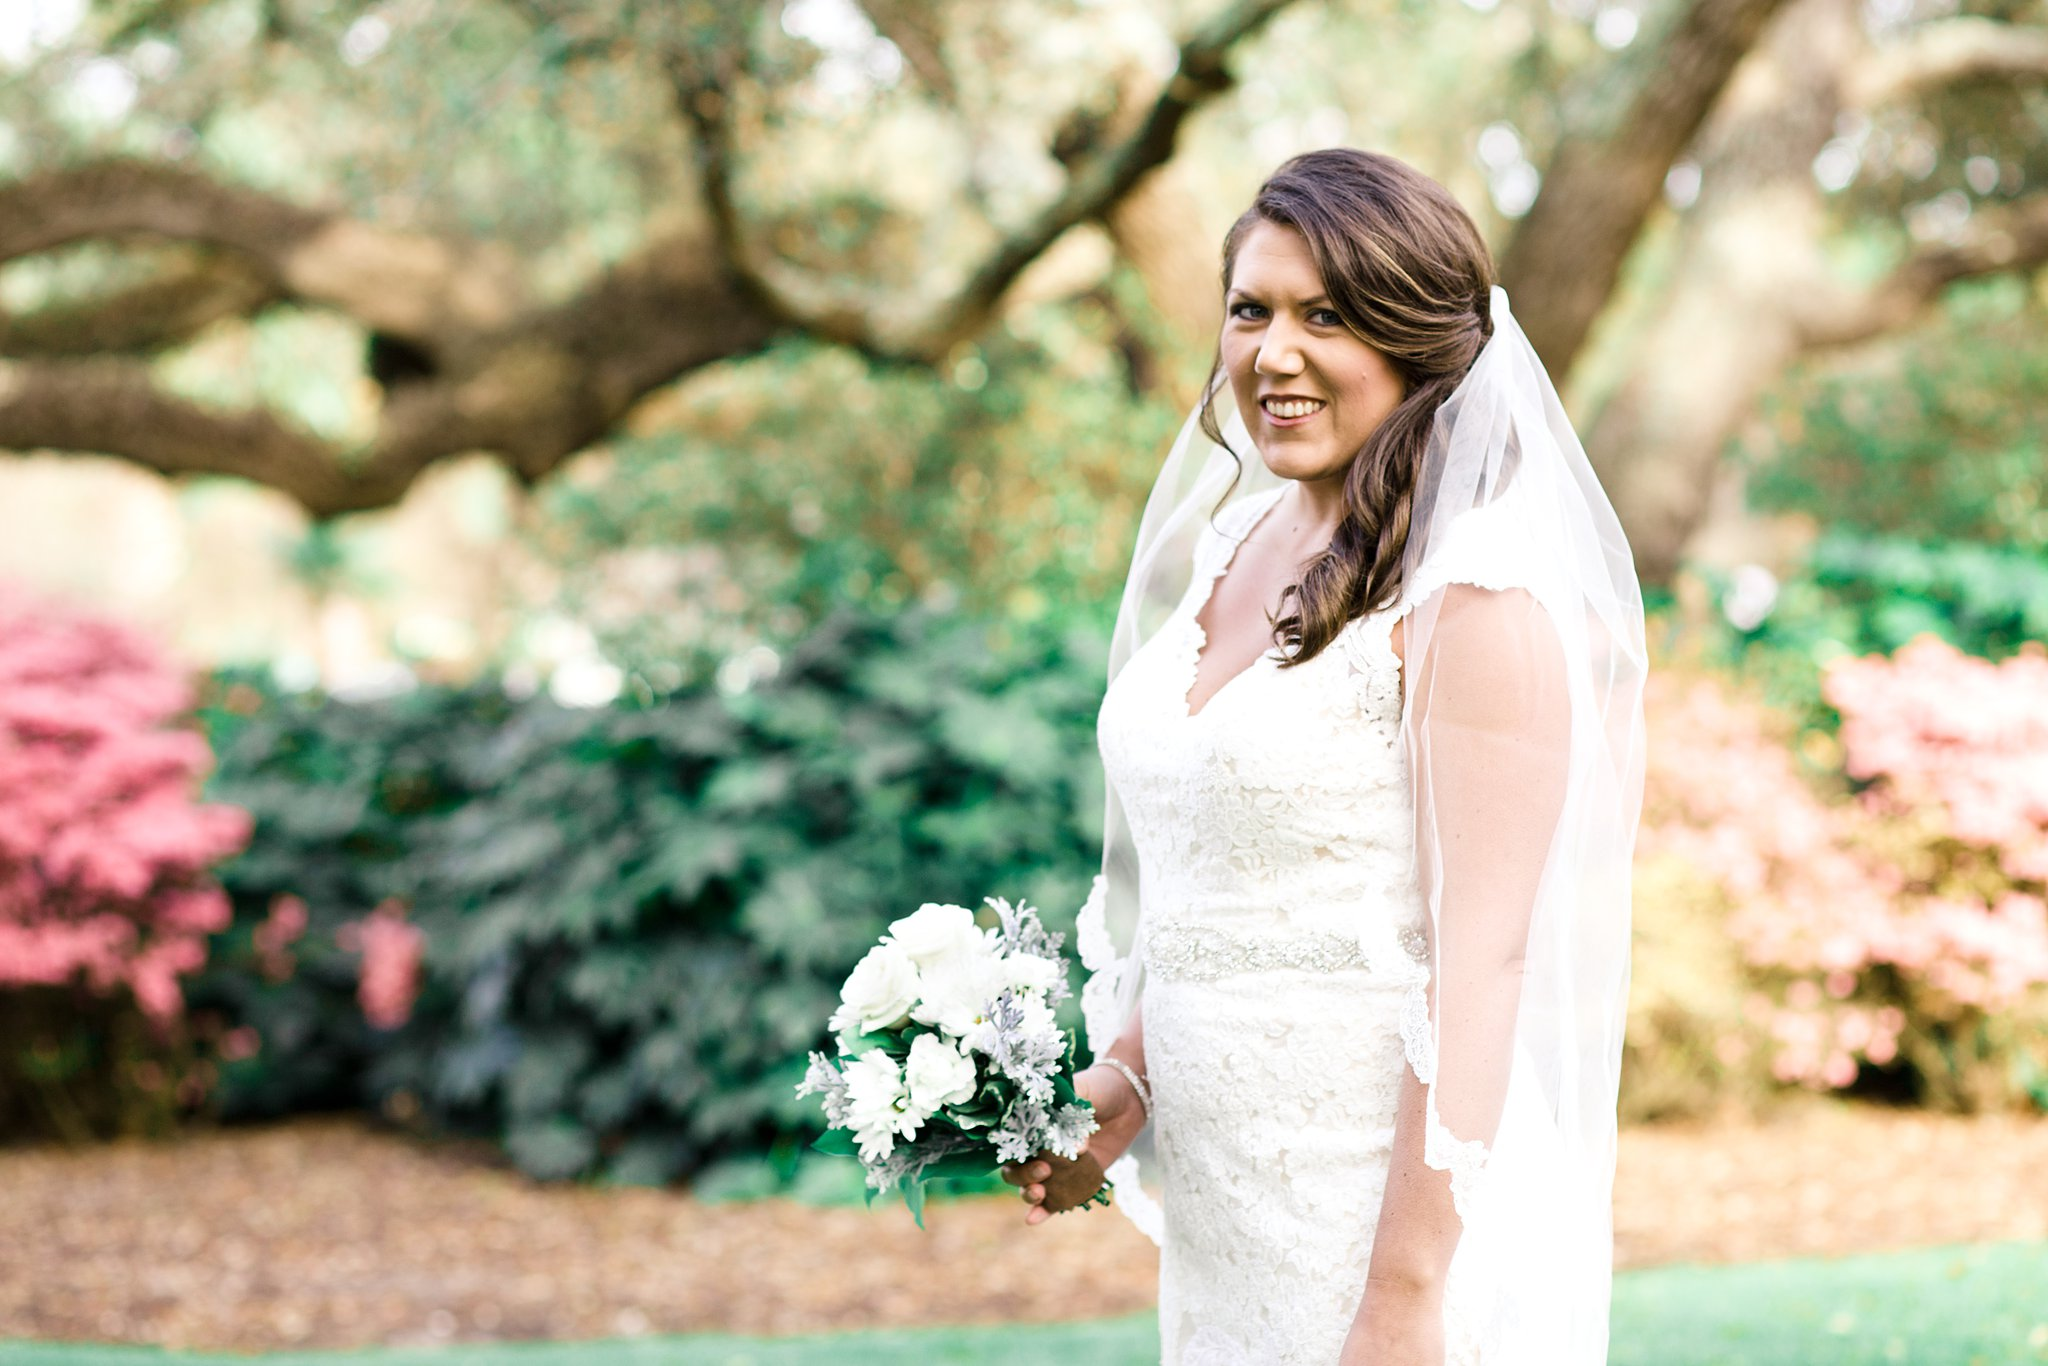 litchfield-golf-country-club-bridal-session-pawleys-island-sc-photos_0122.jpg